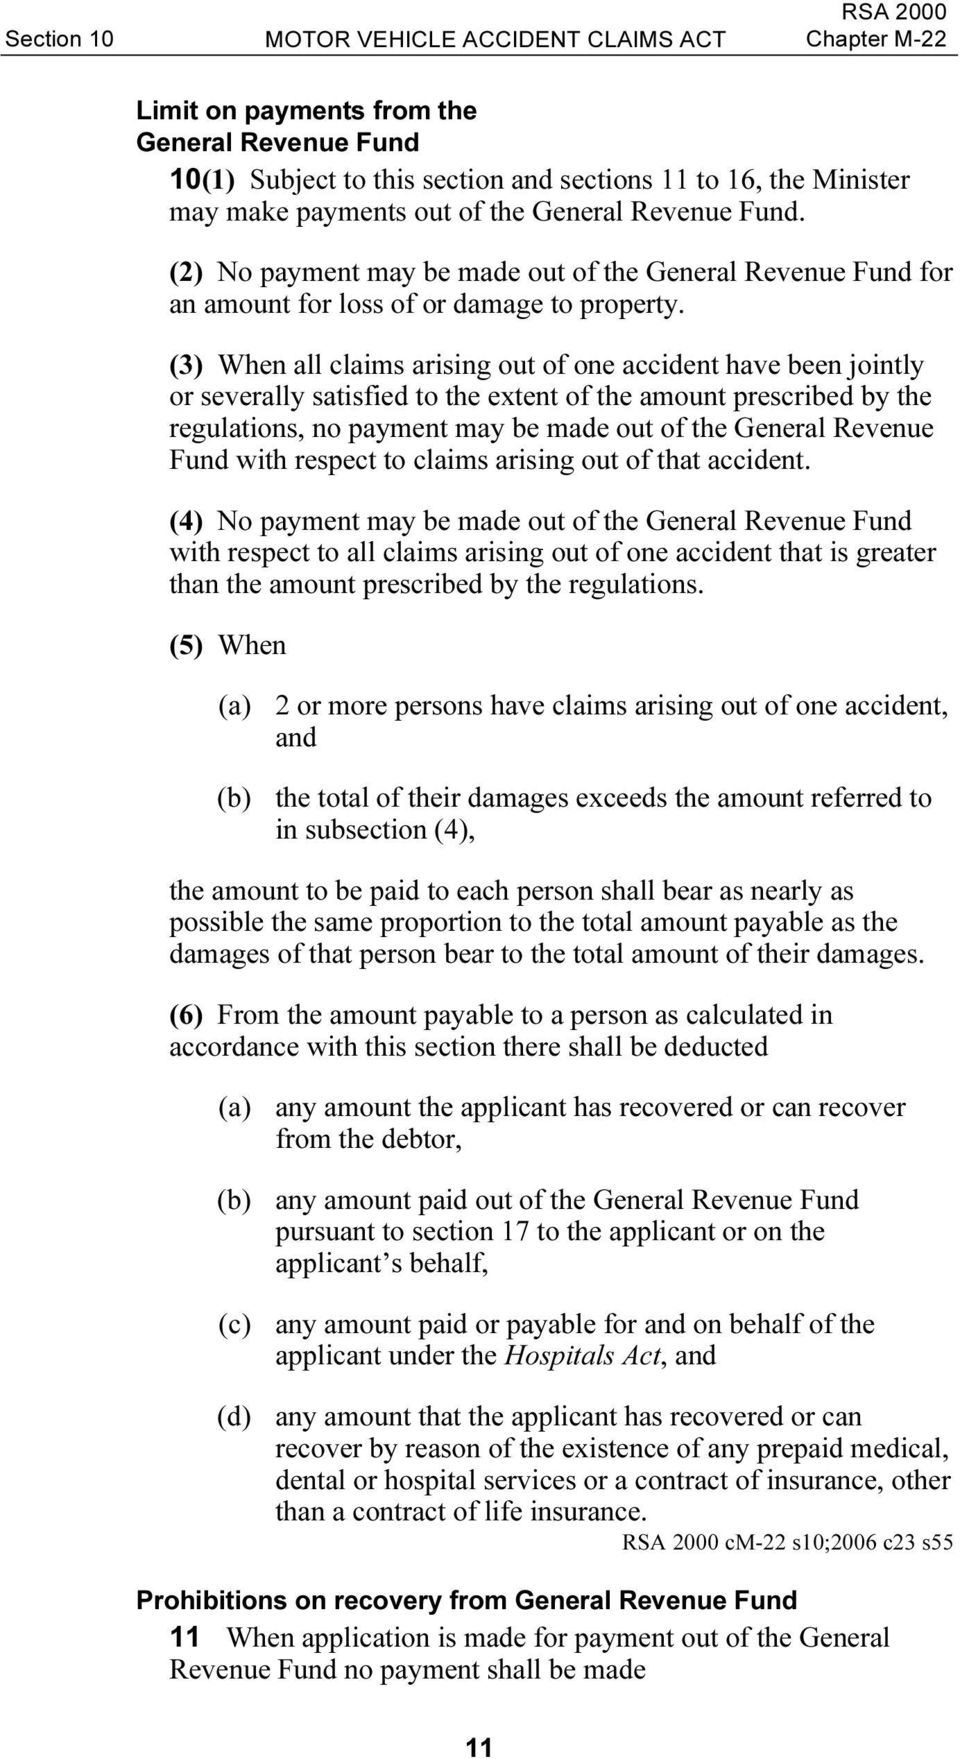 (3) When all claims arising out of one accident have been jointly or severally satisfied to the extent of the amount prescribed by the regulations, no payment may be made out of the General Revenue